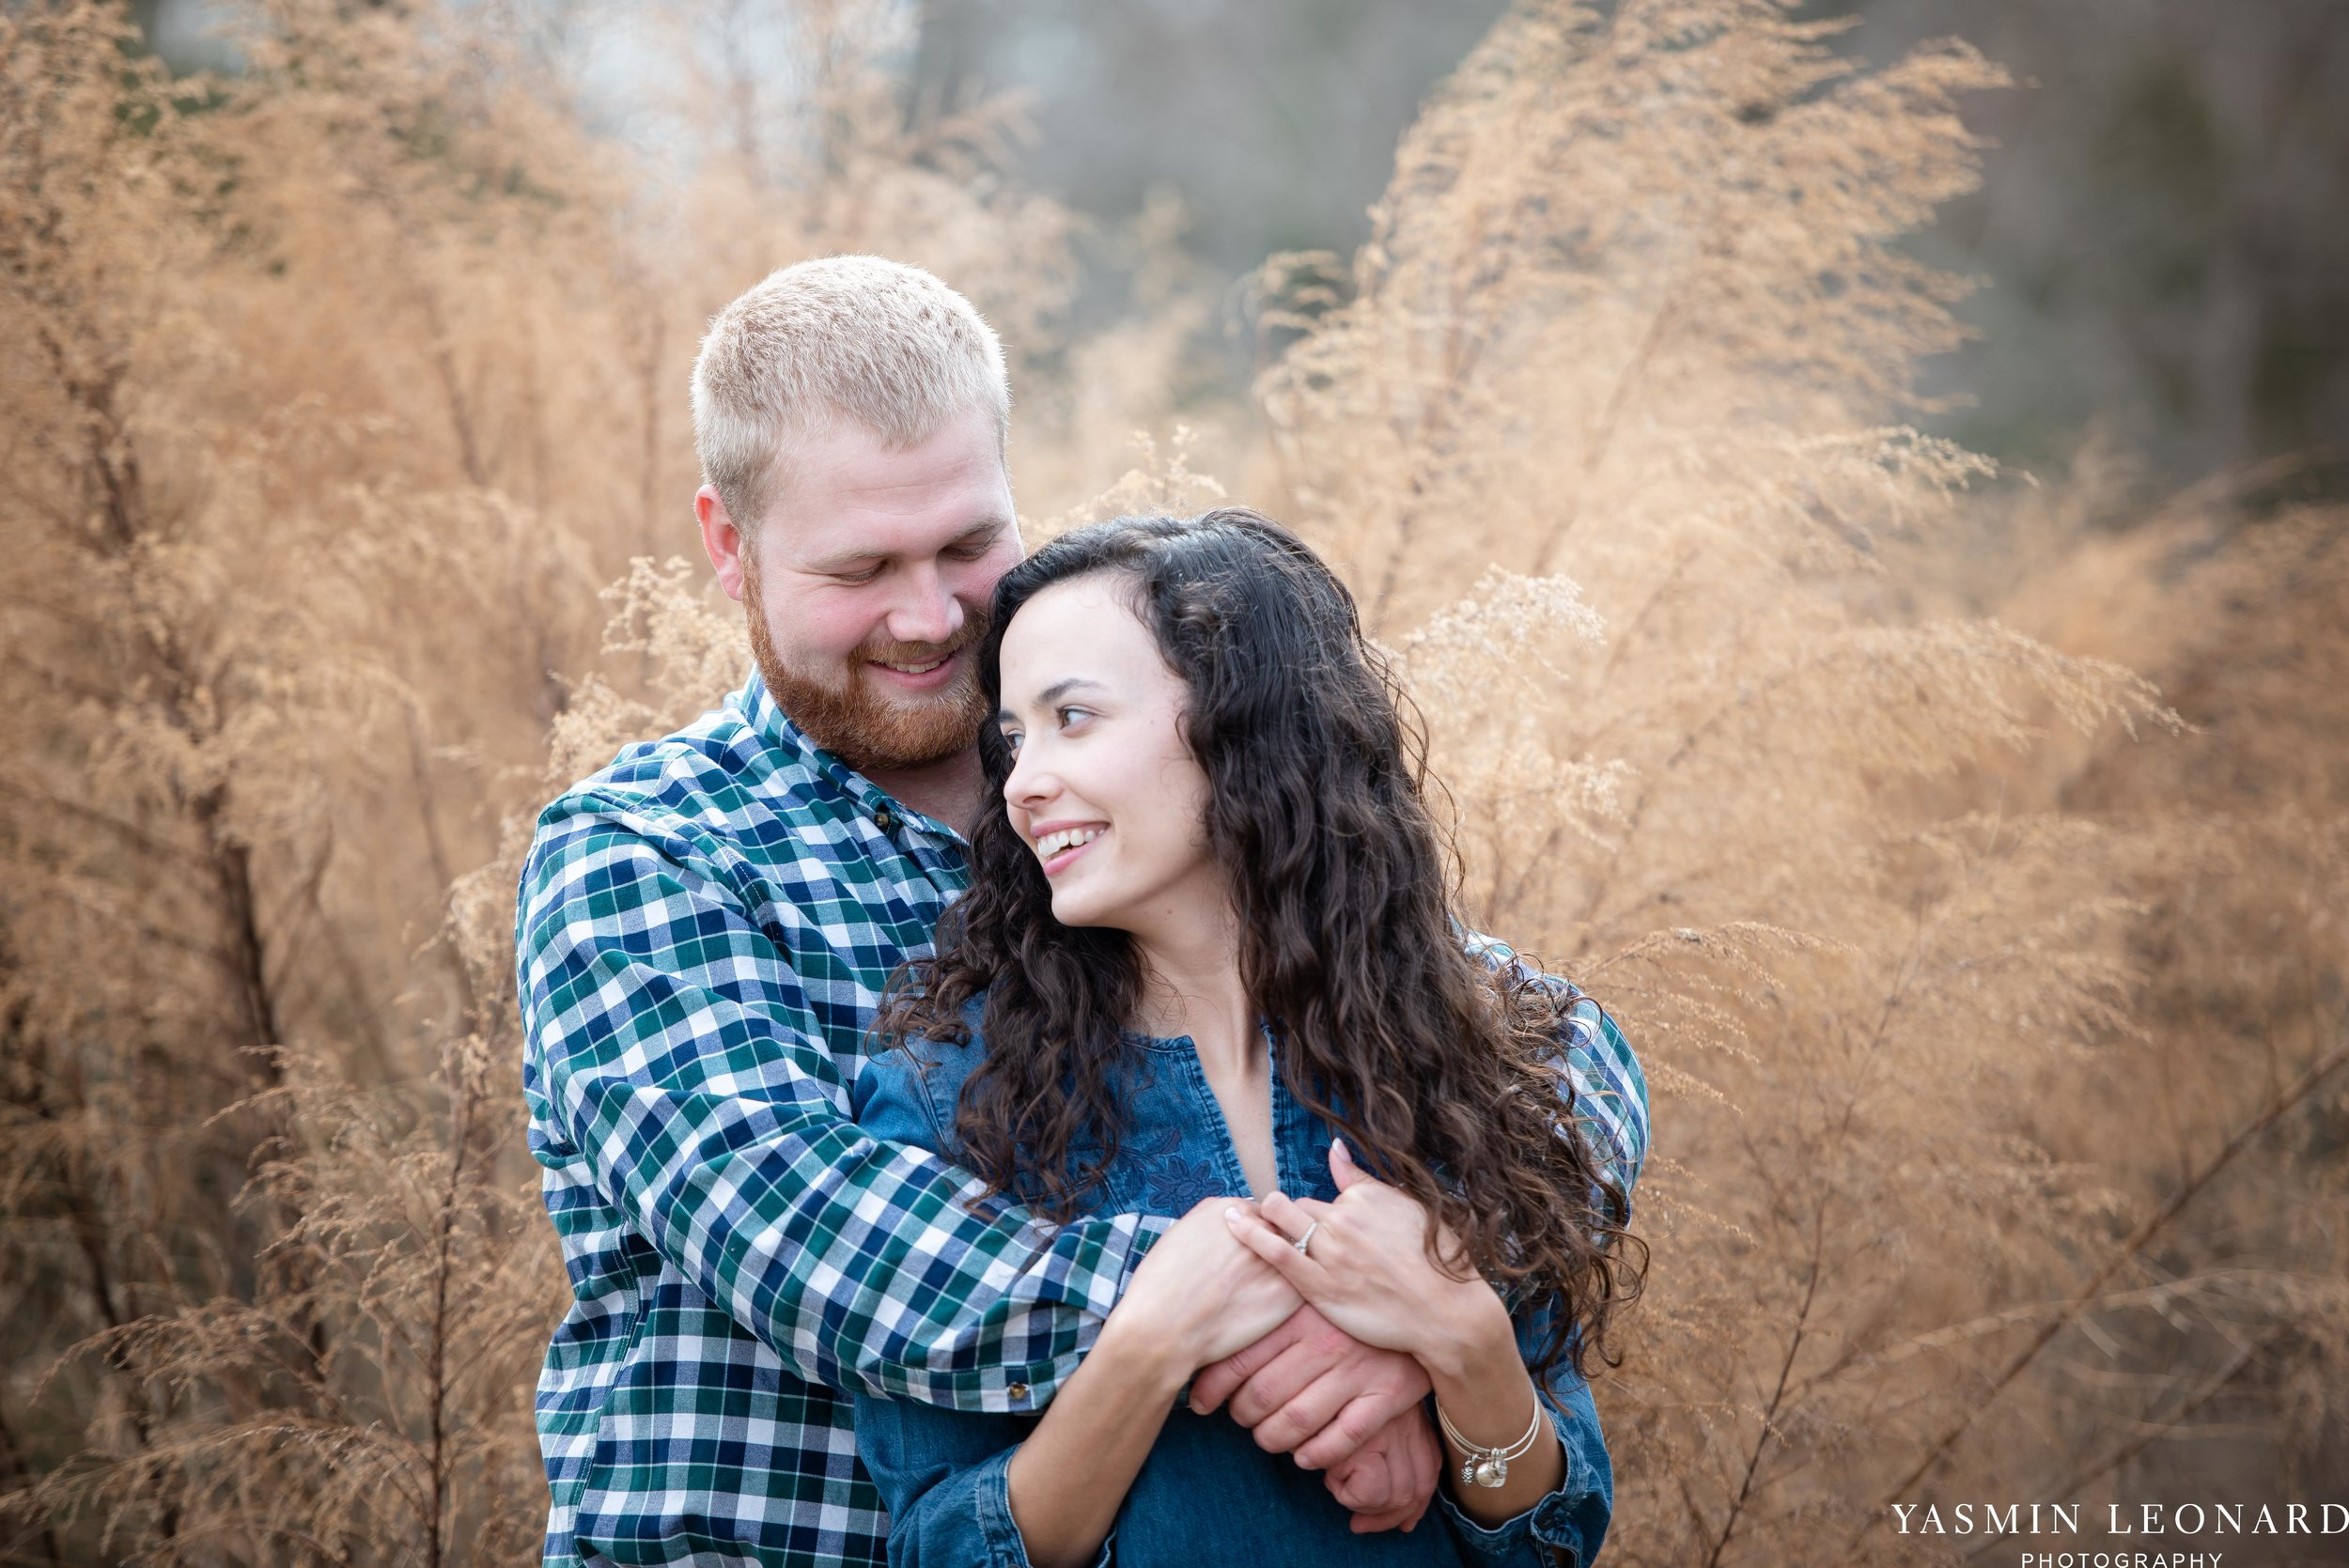 Wallburg Engagement Session - Country Engagement Session - High Point Engagement Session - Outdoor Engagement Session - Engagement Photos - Barn Engagement Photos - NC Photographer - High Point Photographer-5.jpg